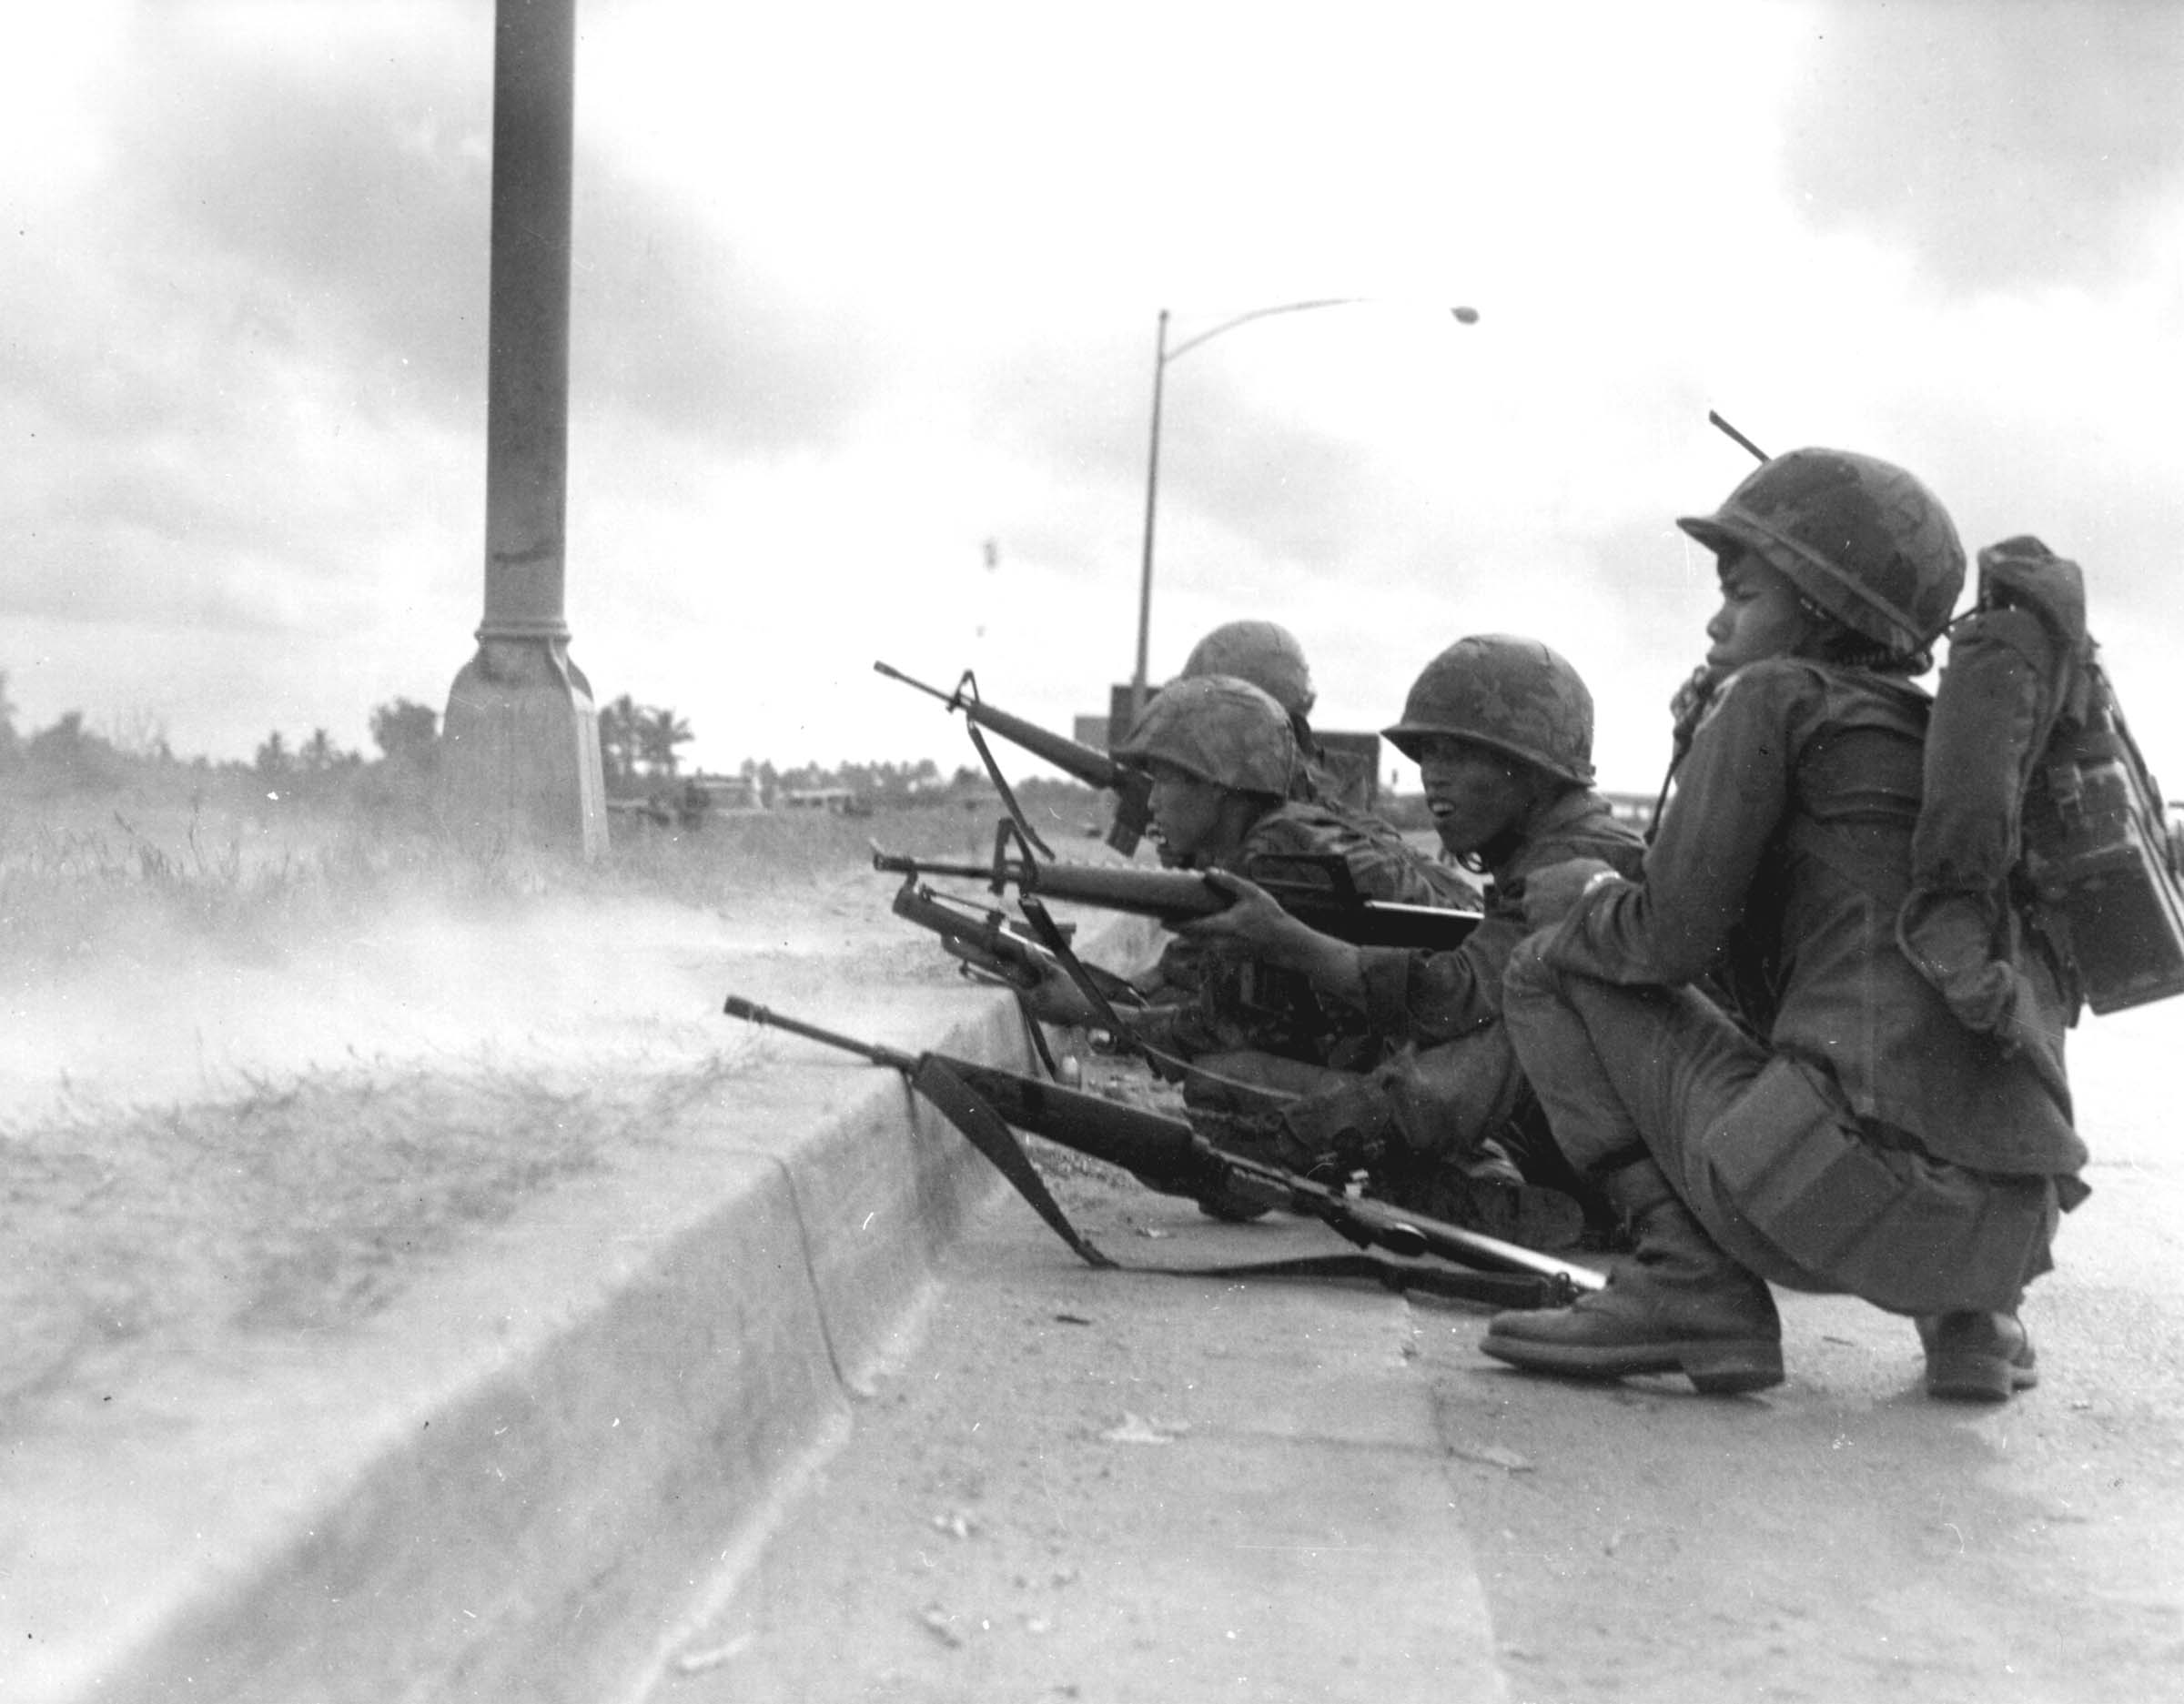 the tet offensive In 1968, when us officials were claiming the vietnam war was nearly won, north vietnam and the viet cong launched a devastating attack during the tet holiday it was a turning point in the war.